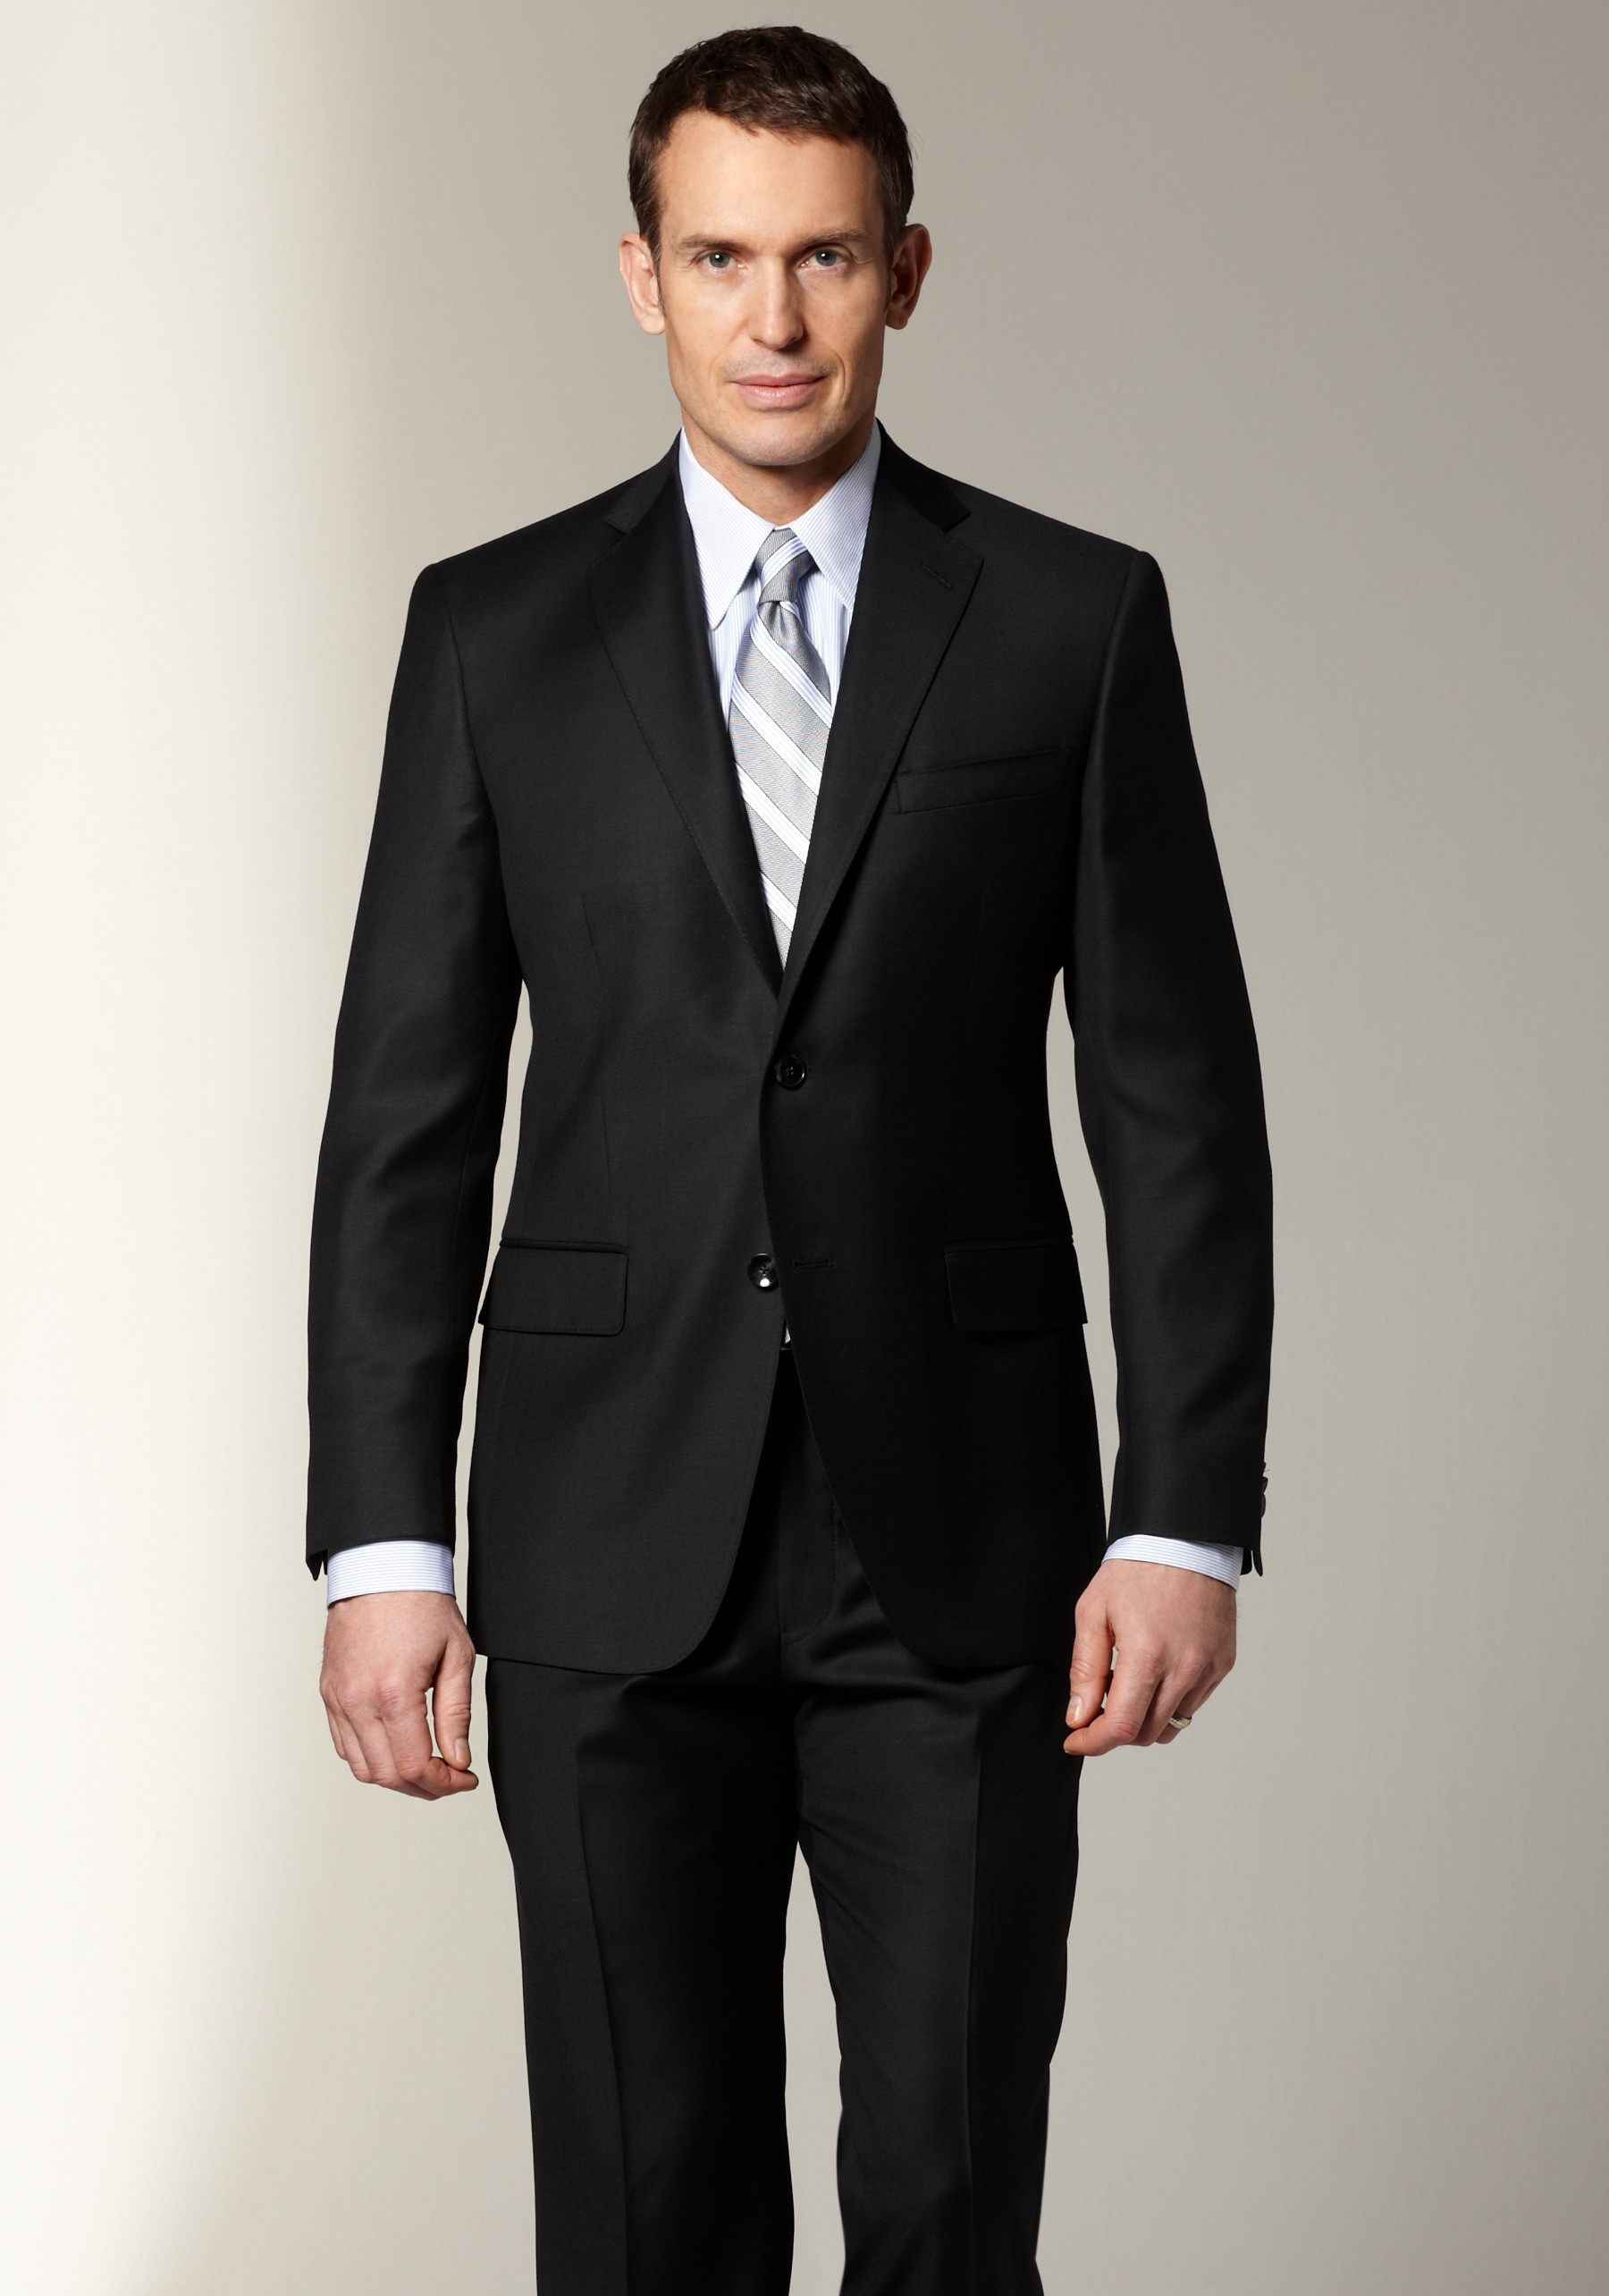 Need accessory and tie help for my wedding suit please.